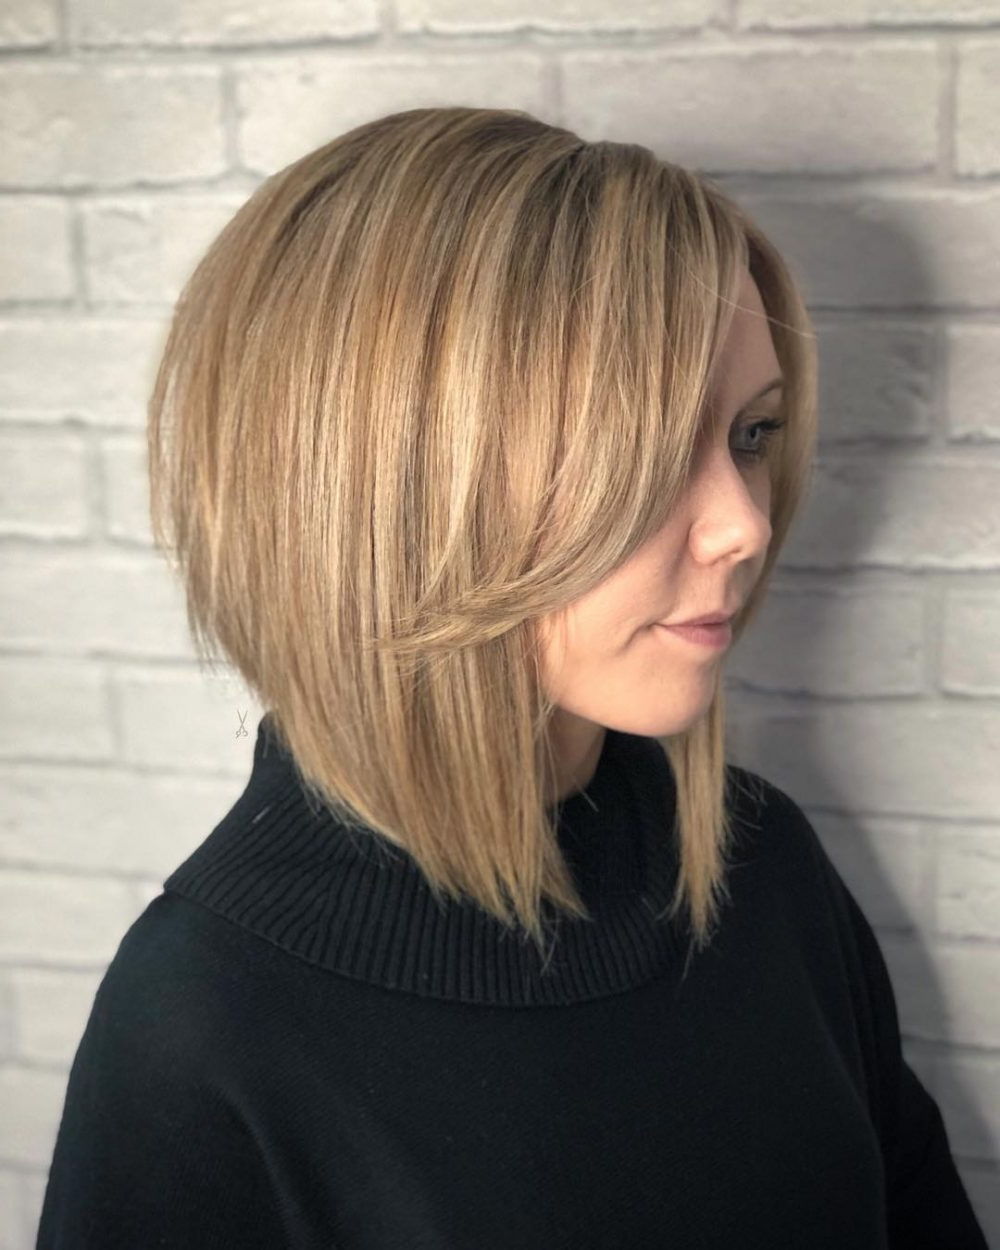 34 Greatest Short Haircuts And Hairstyles For Thick Hair For 2018 In Short Length Hairstyles For Thick Hair (View 3 of 25)